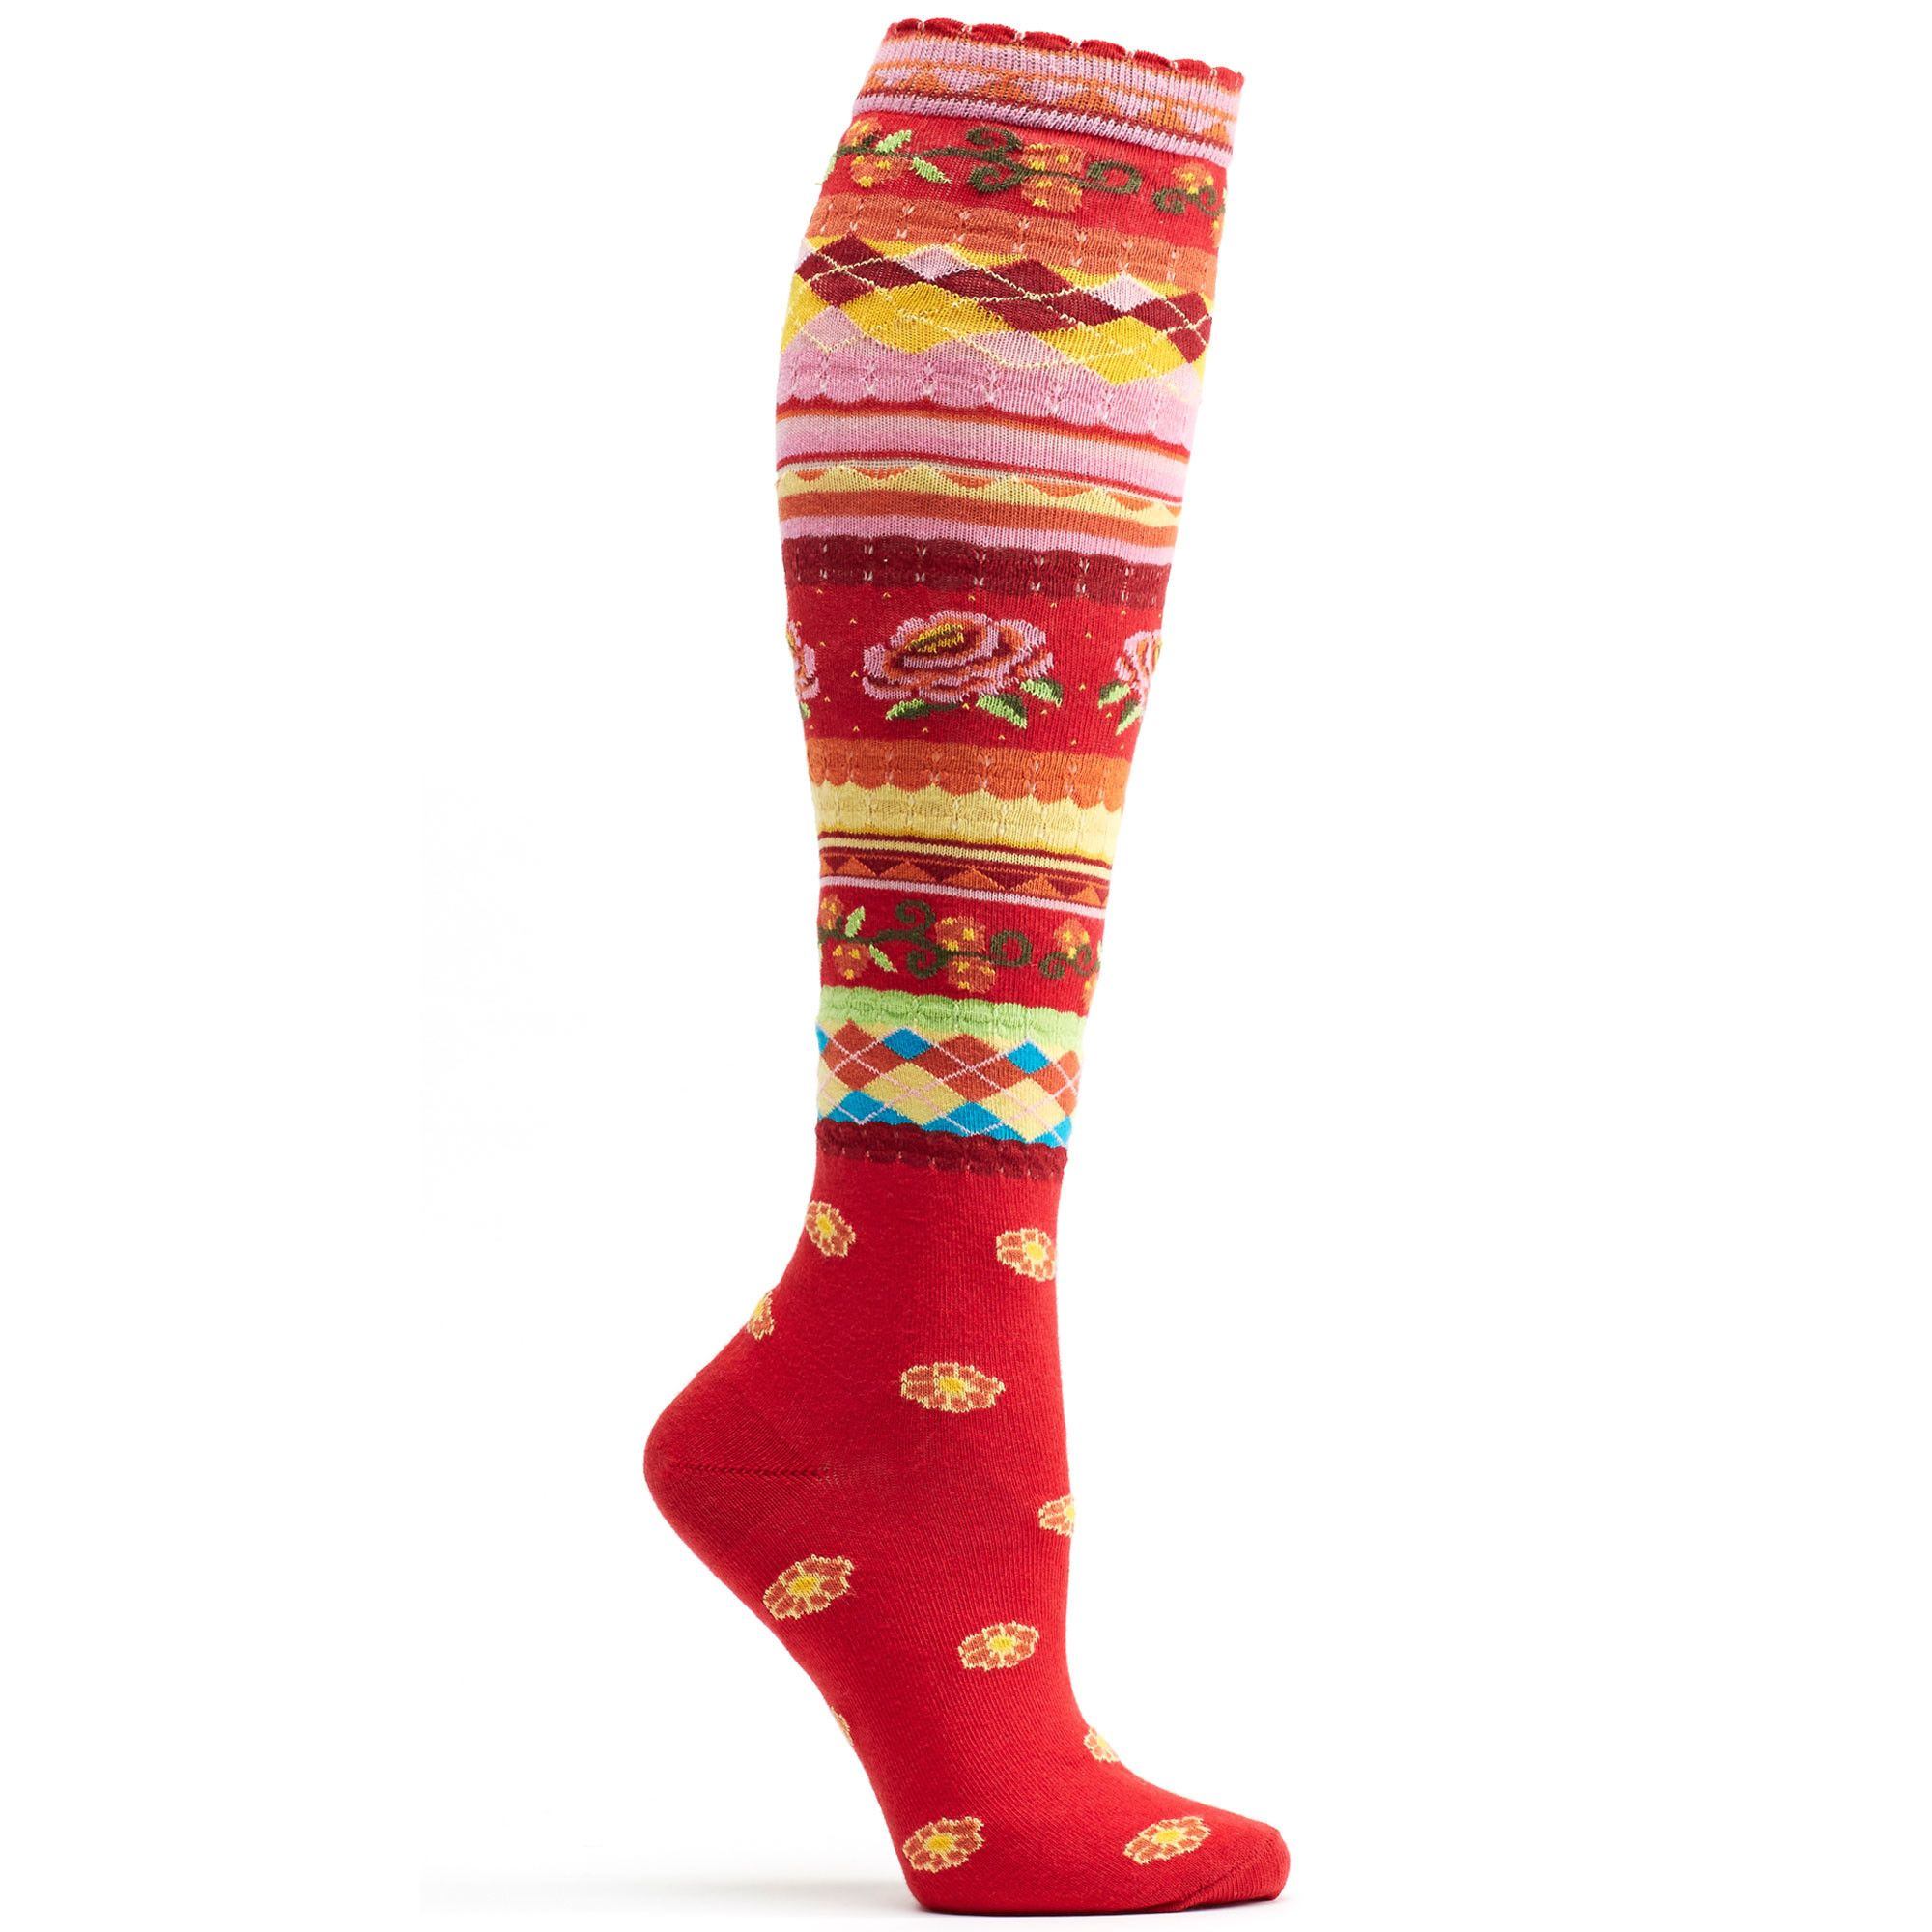 Garden Party Knee High Sock | Products | Pinterest